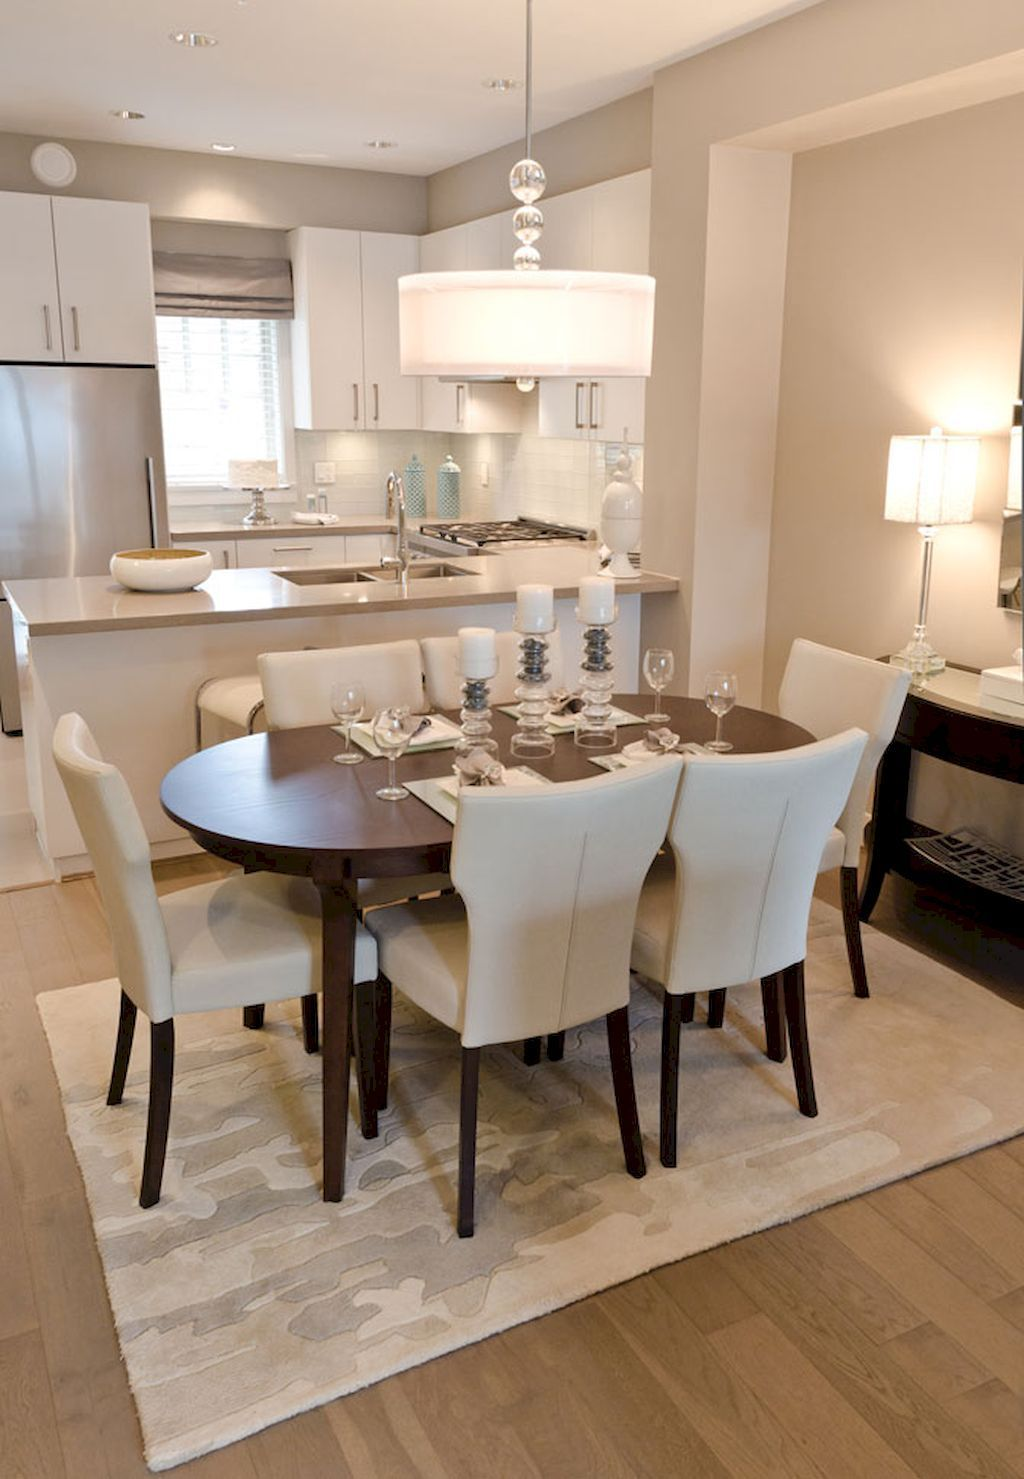 Small dining room table and chair ideas on a budget (18 in 2019